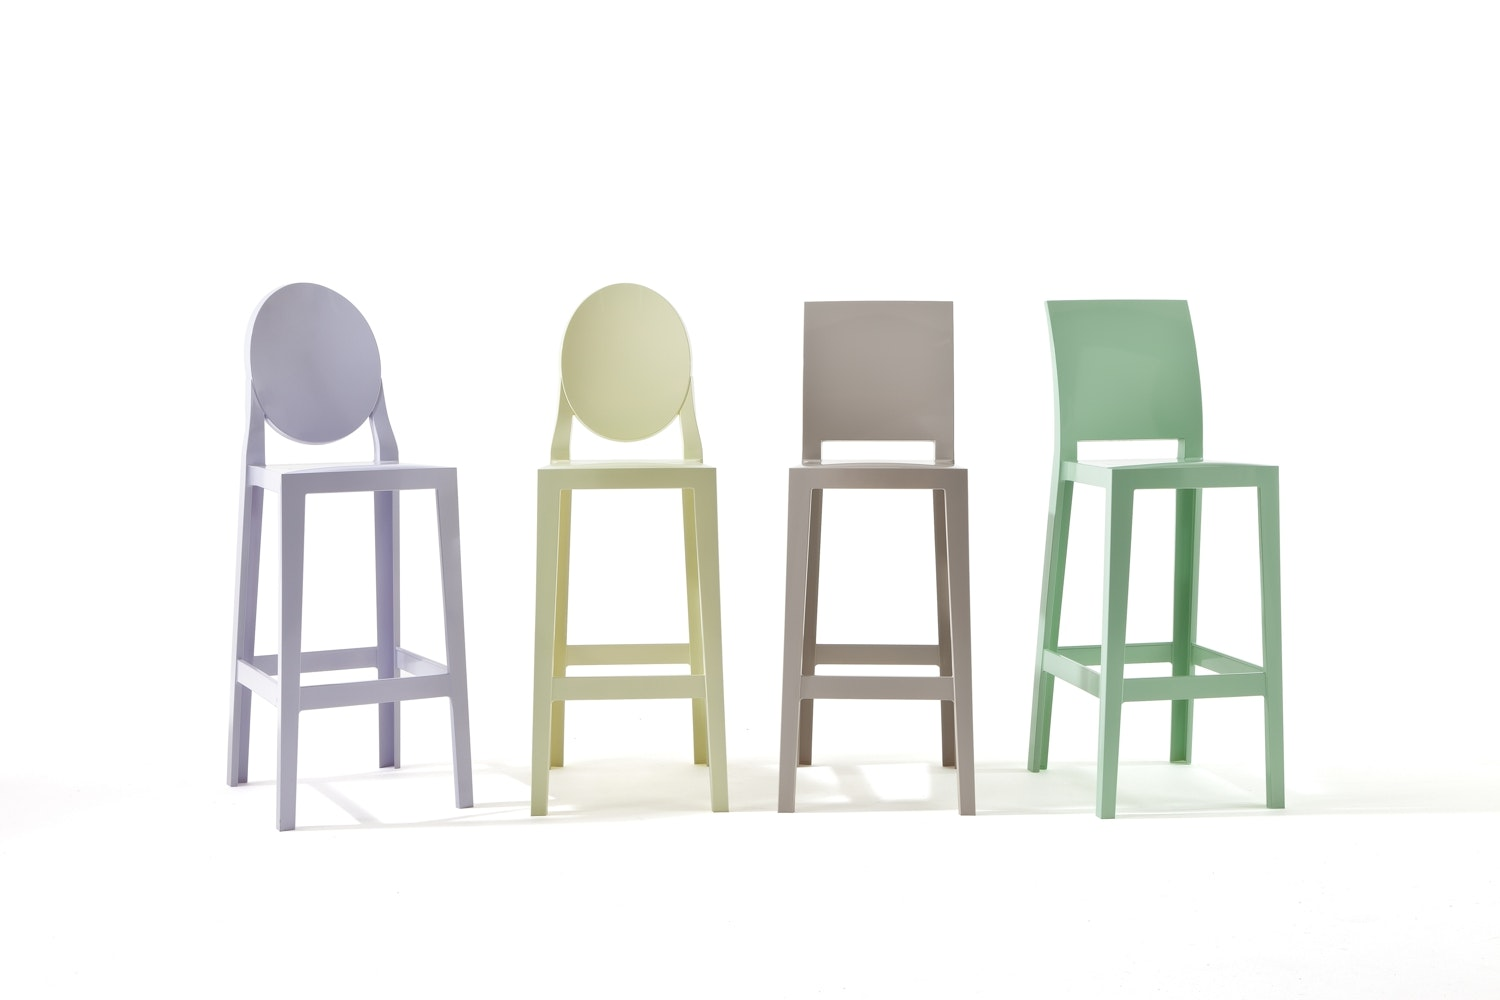 One More Please Low Stool by Philippe Starck for Kartell